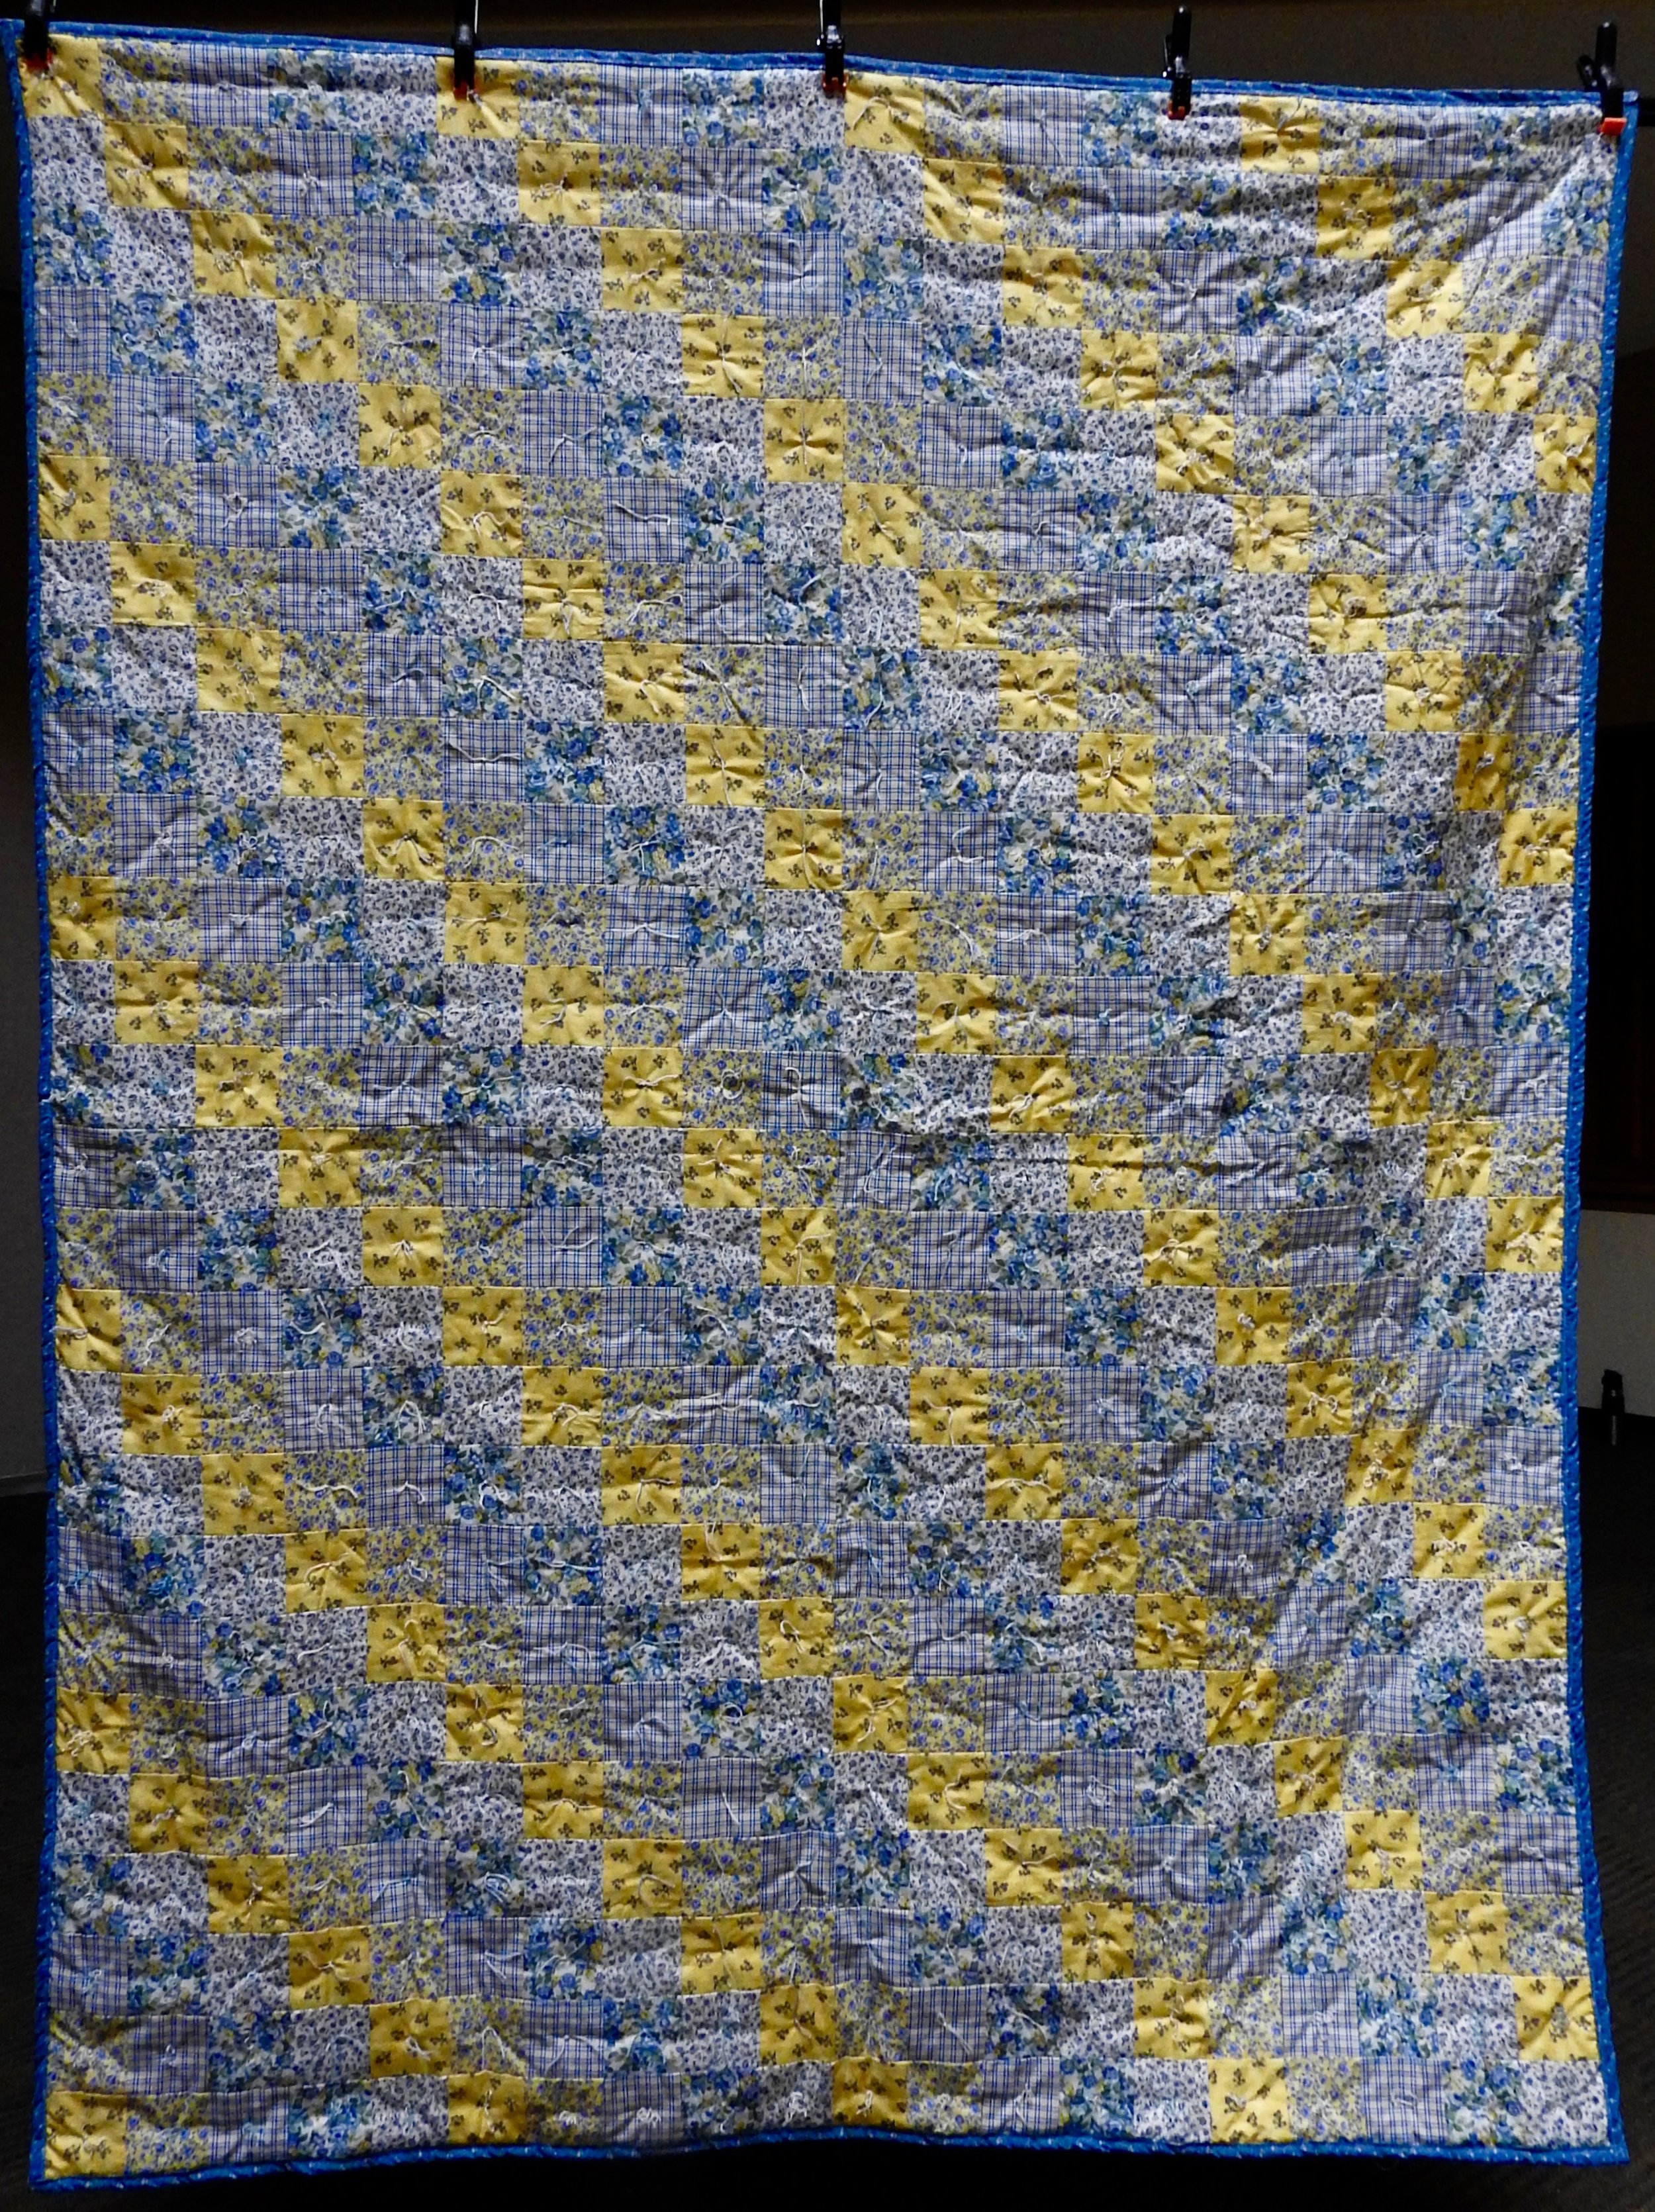 Sunshine Morning Comforter, Piece & Knotted, The Depot Quilt Room, 64 x 84""